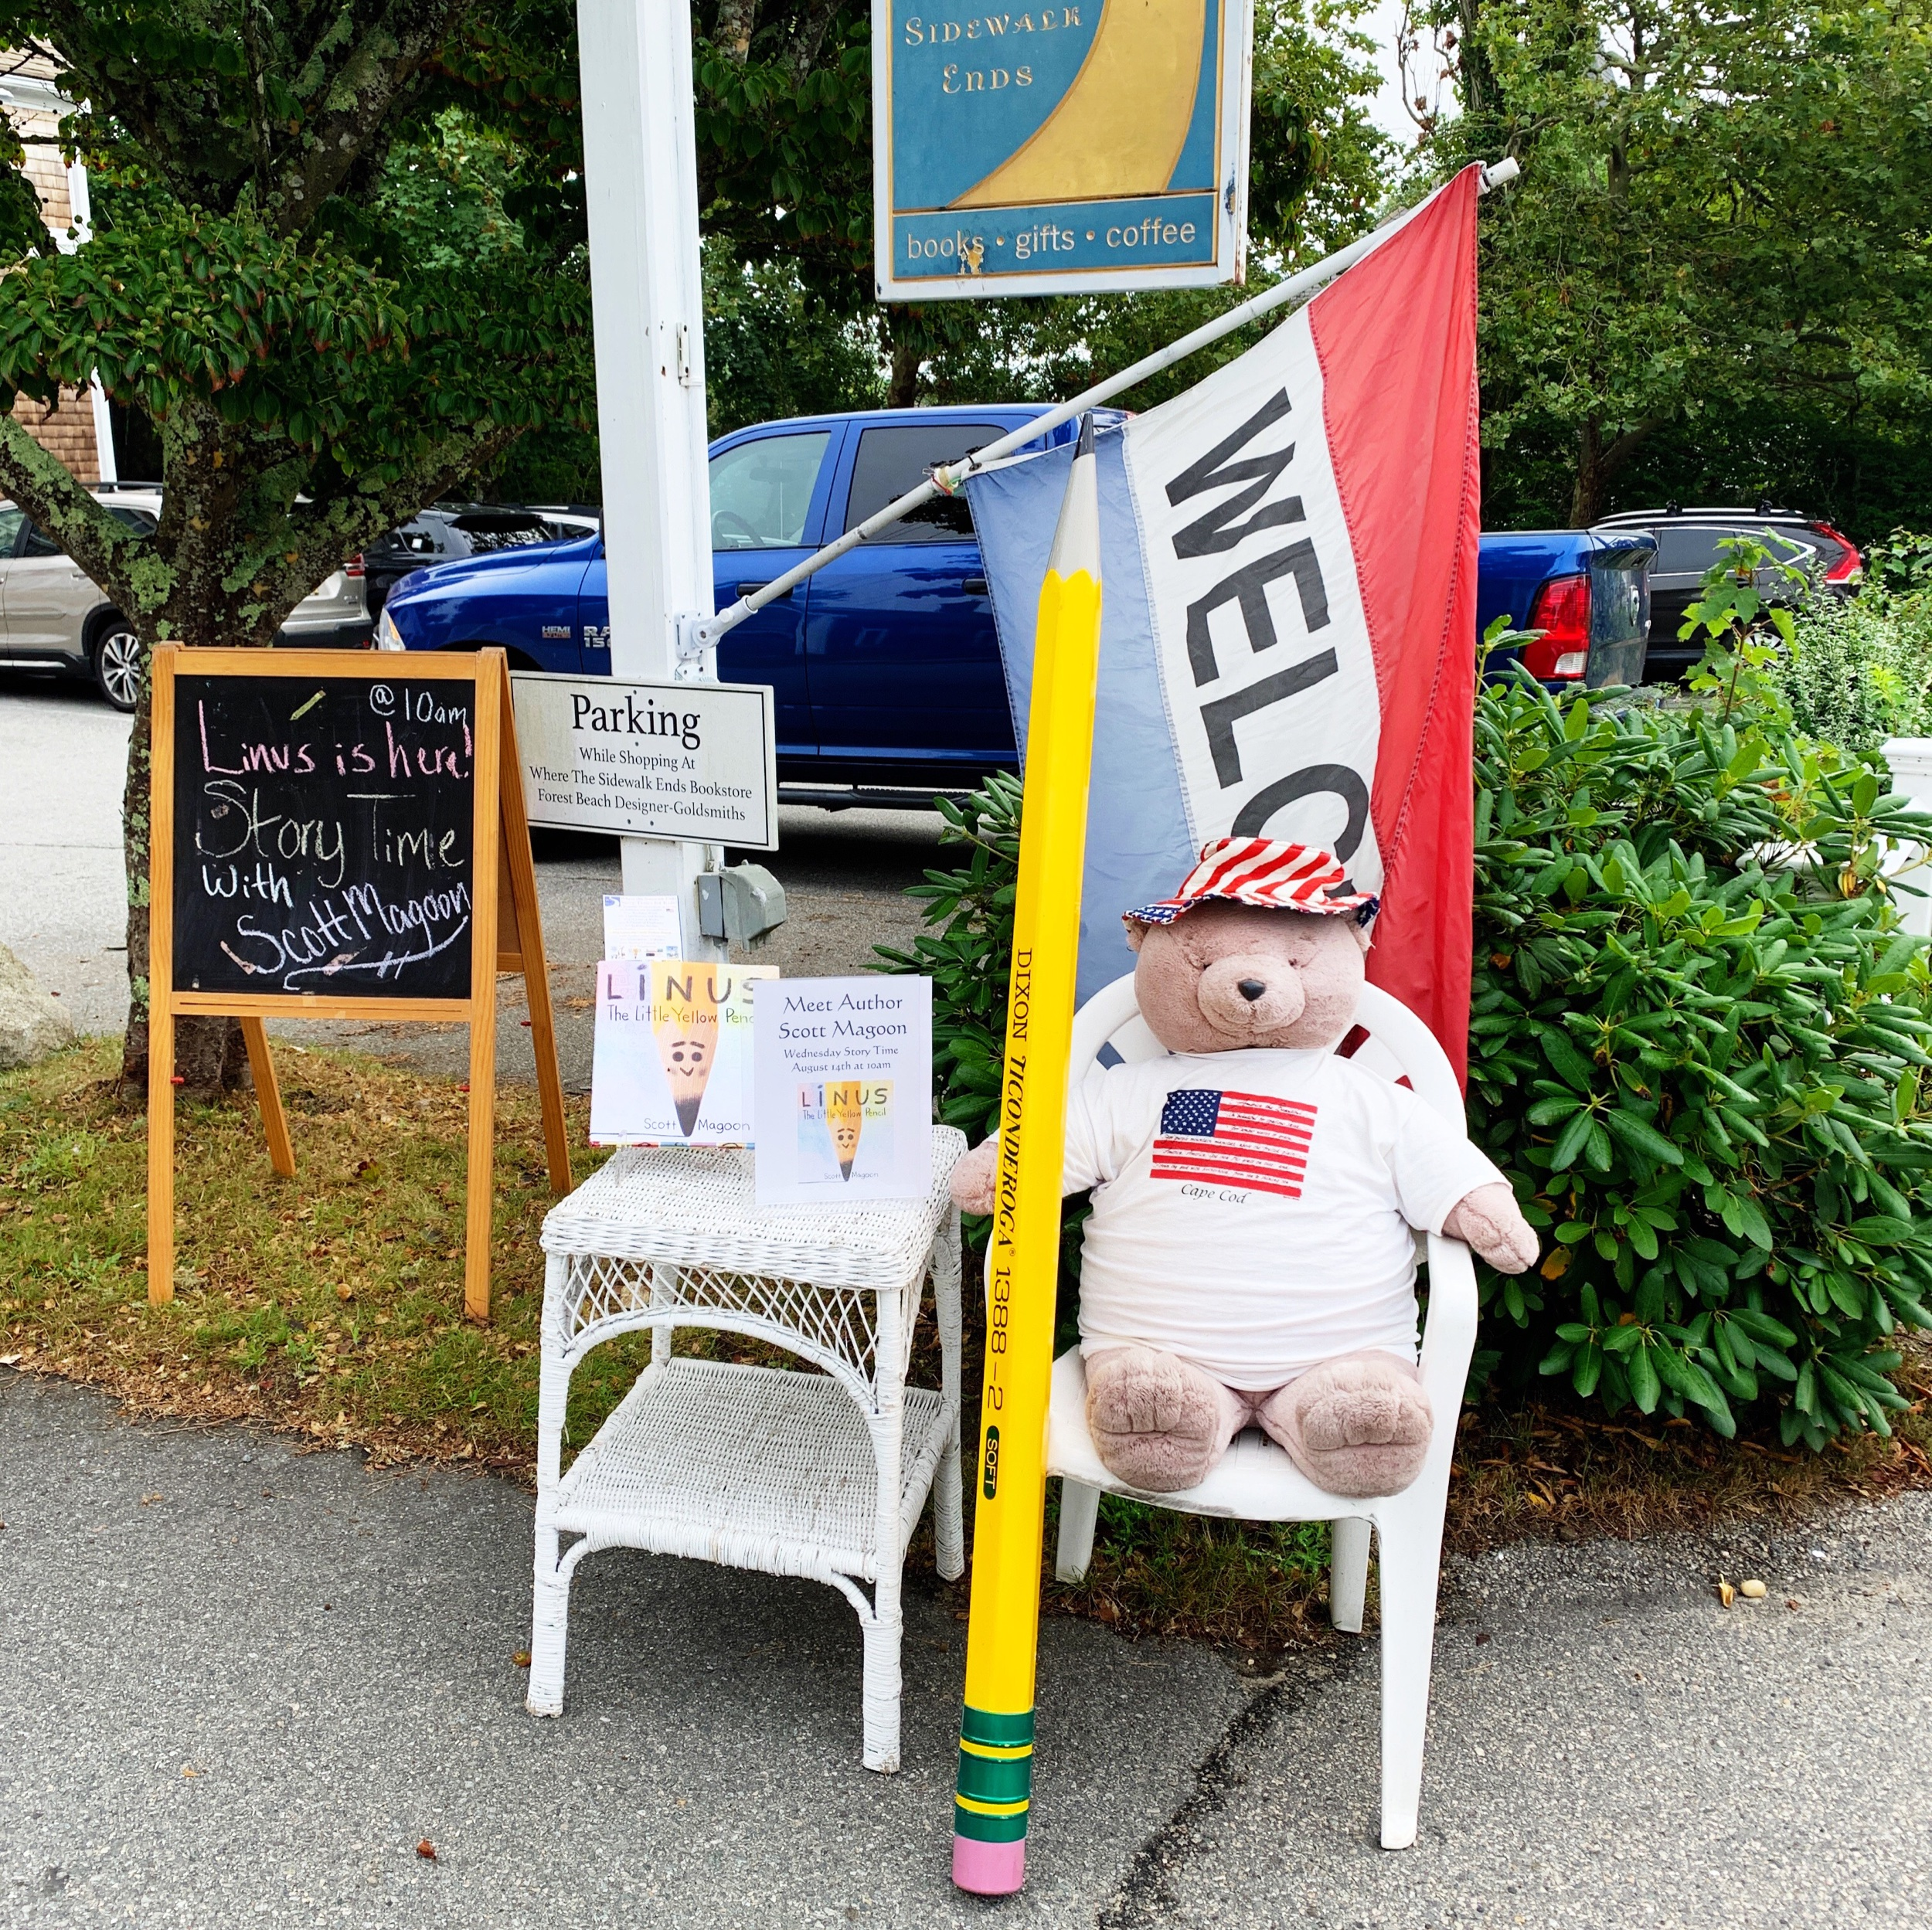 This greeted passers by in front of Where the Sidewalk Ends in Chatham, MA during my visit there. Thanks Blue Bunny Bookstore for letting us use your giant Pencil!